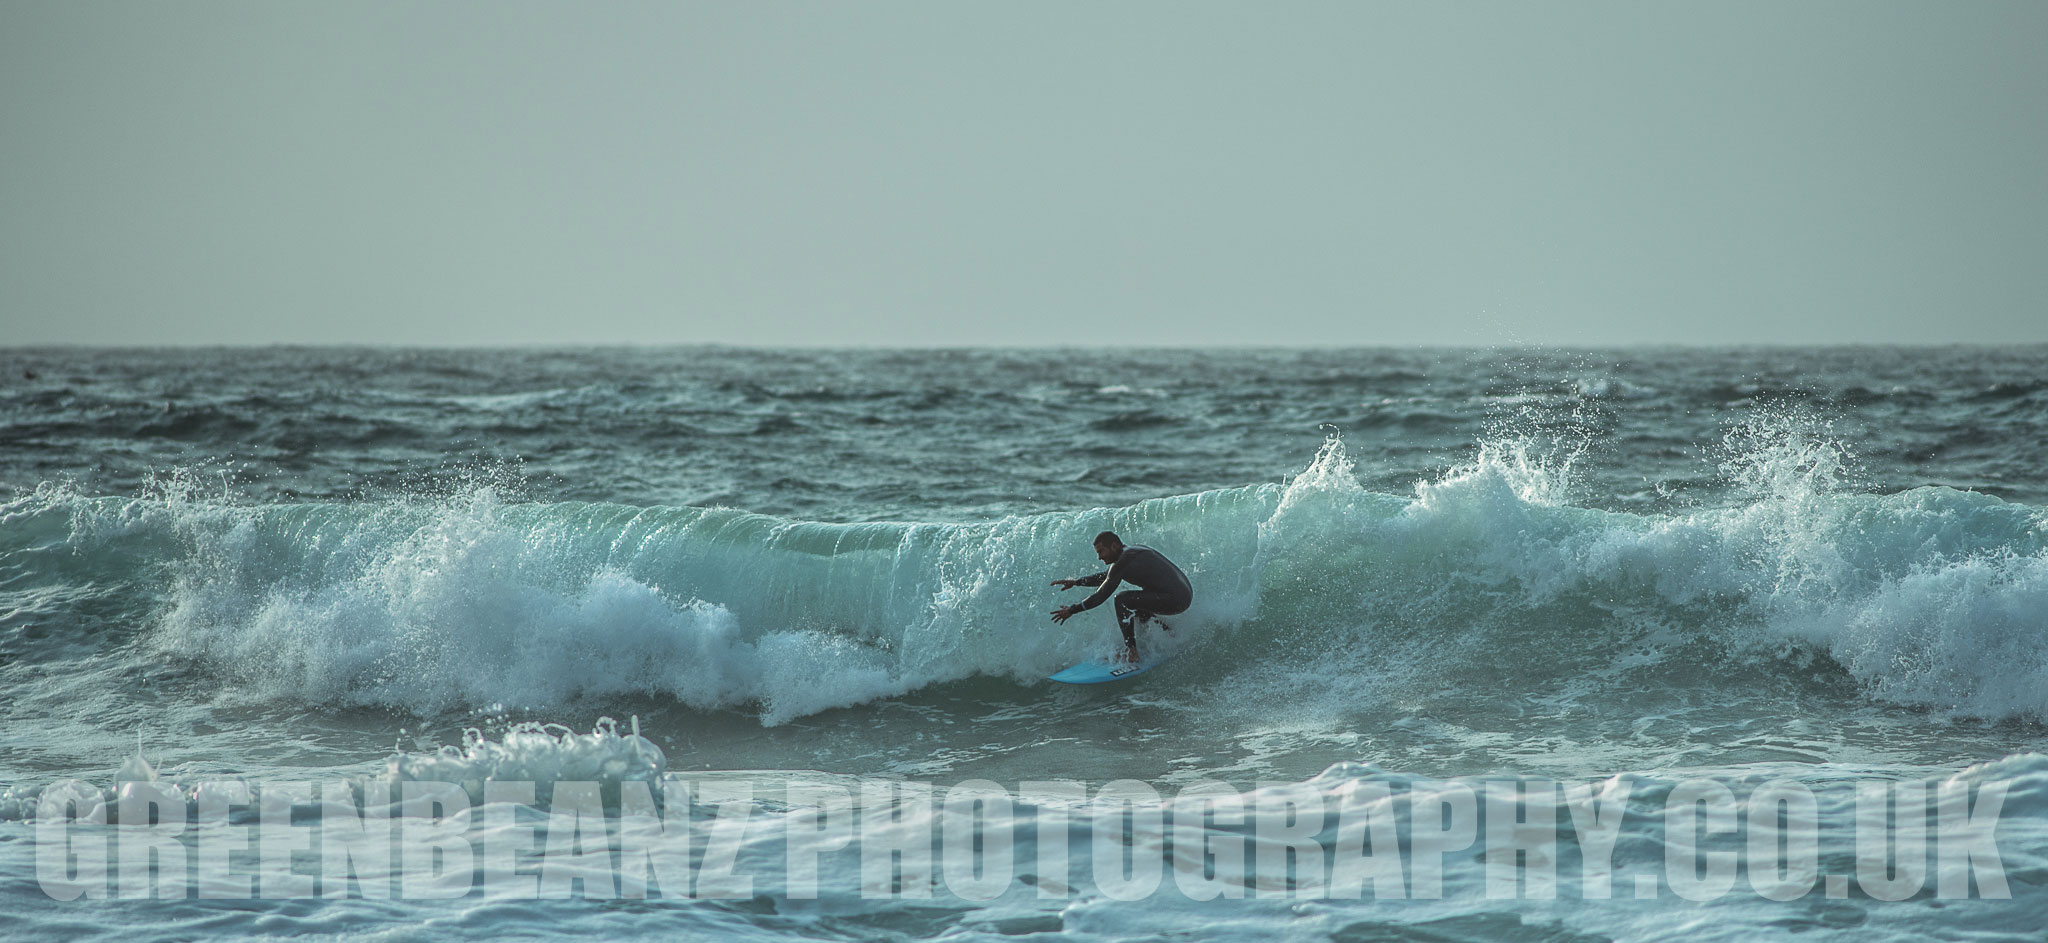 Surfer rides a wave of a messy sea in September at Newquay